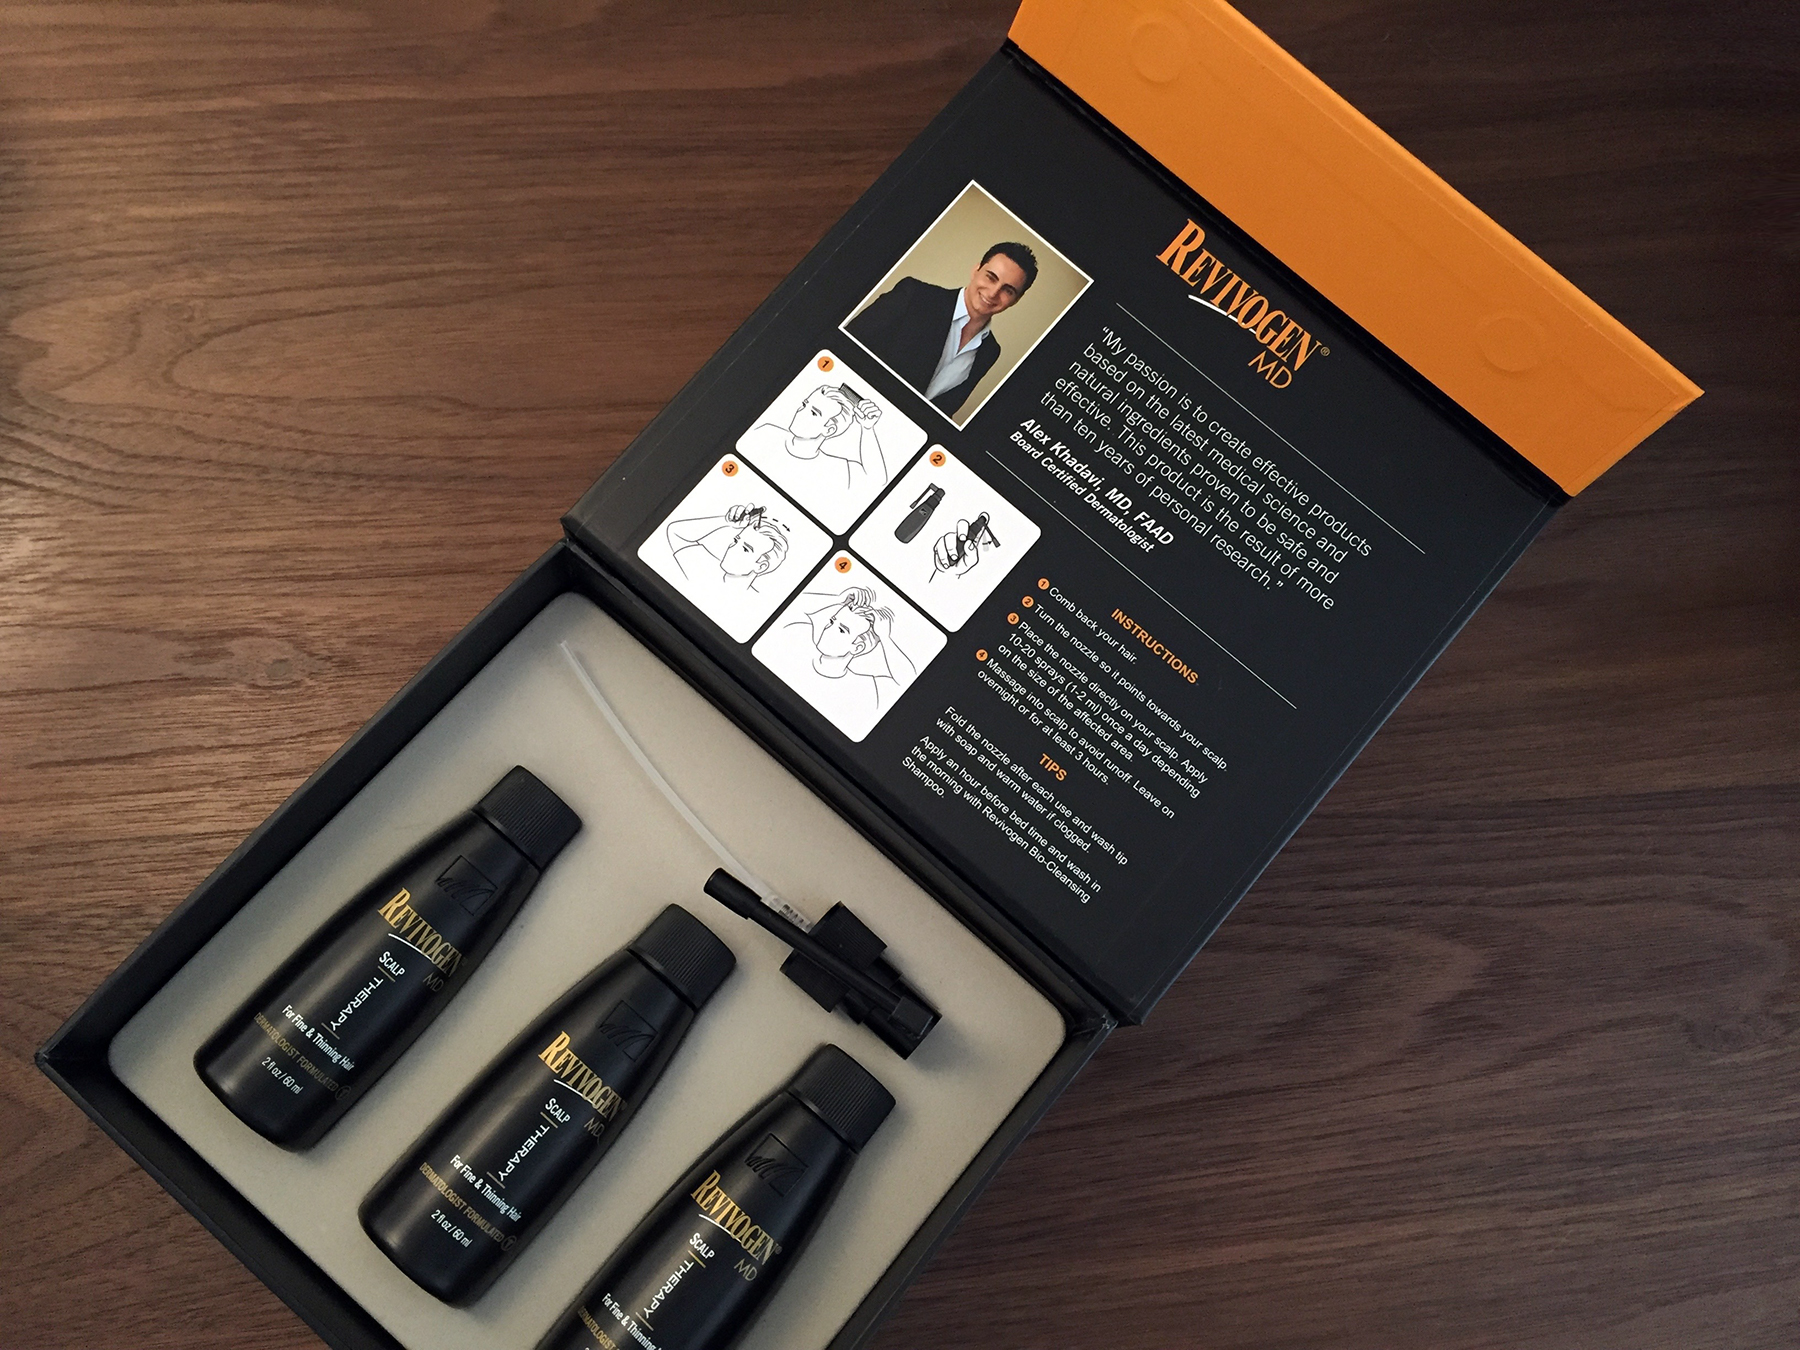 The smart and explicit packaging of the Revivogen MD Scalp Therapy treatment (3-month supply).